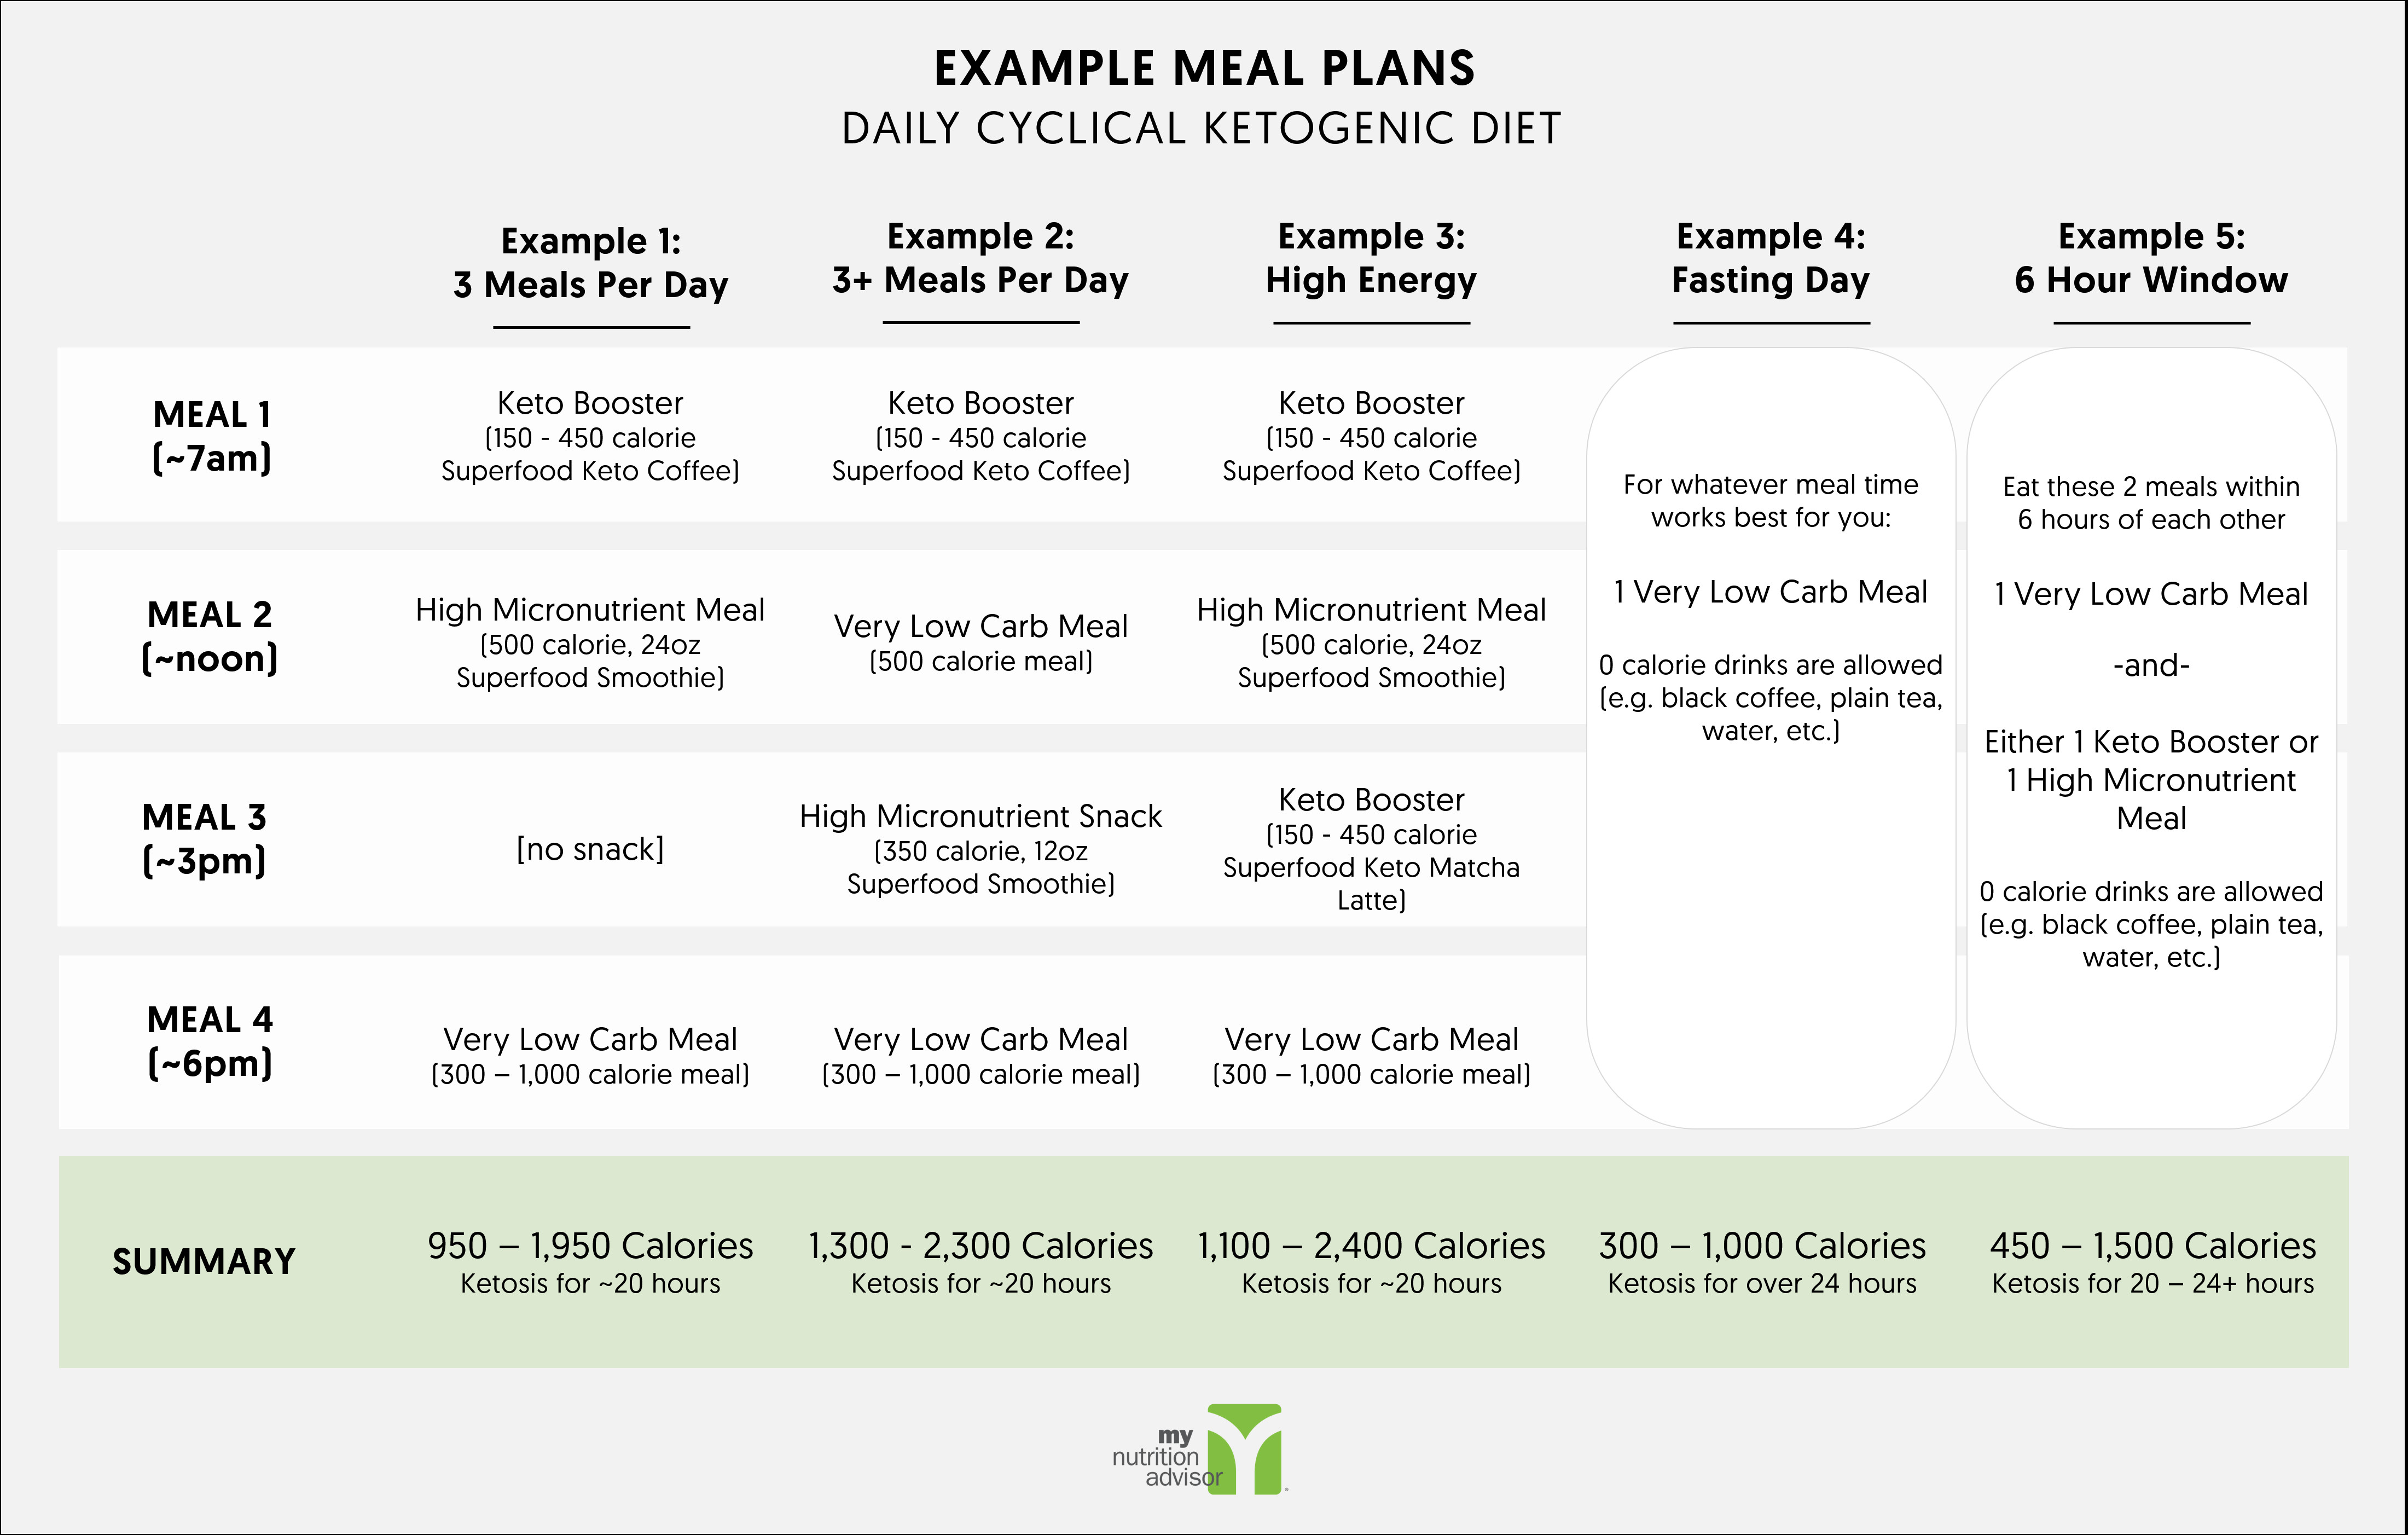 Keto Diet Meal Plan Examples  Daily Cyclical Ketogenic Diet Keto Diet Plan